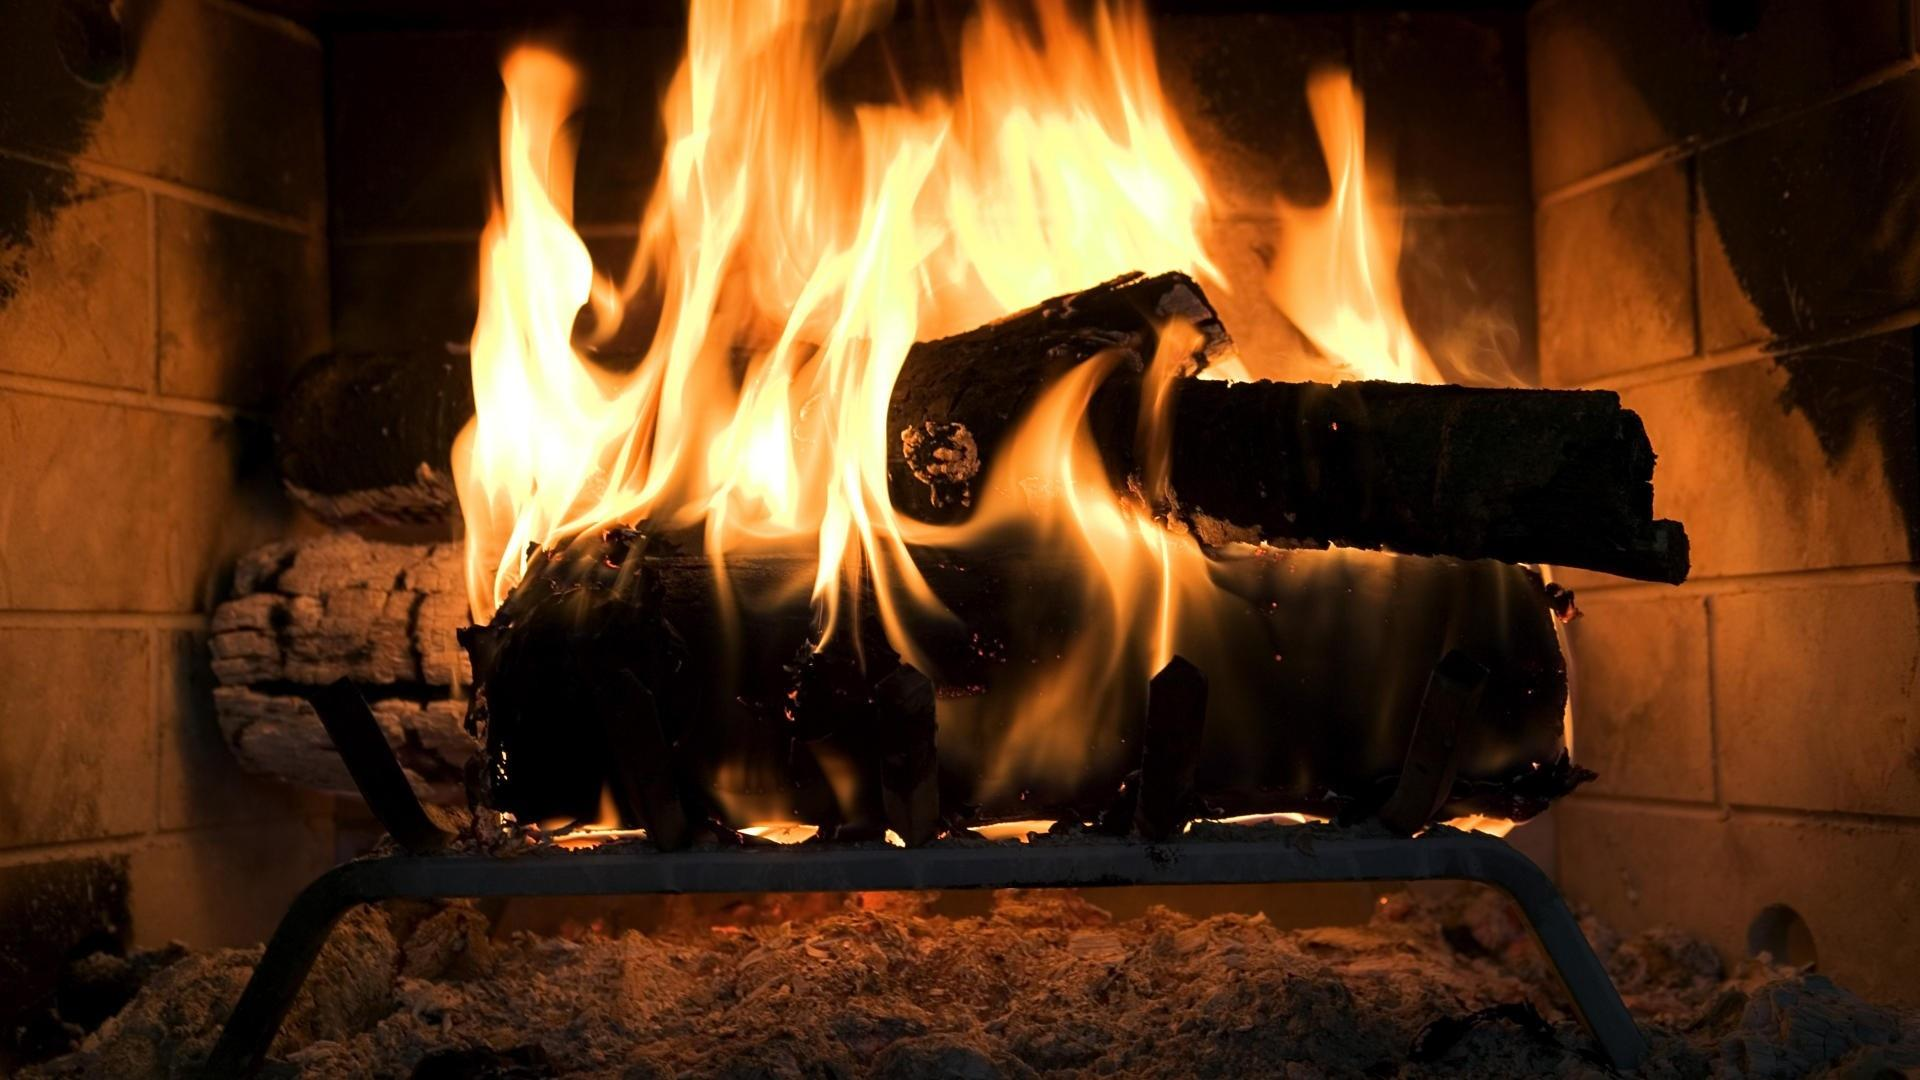 Fireplace Photography wallpapers HD quality